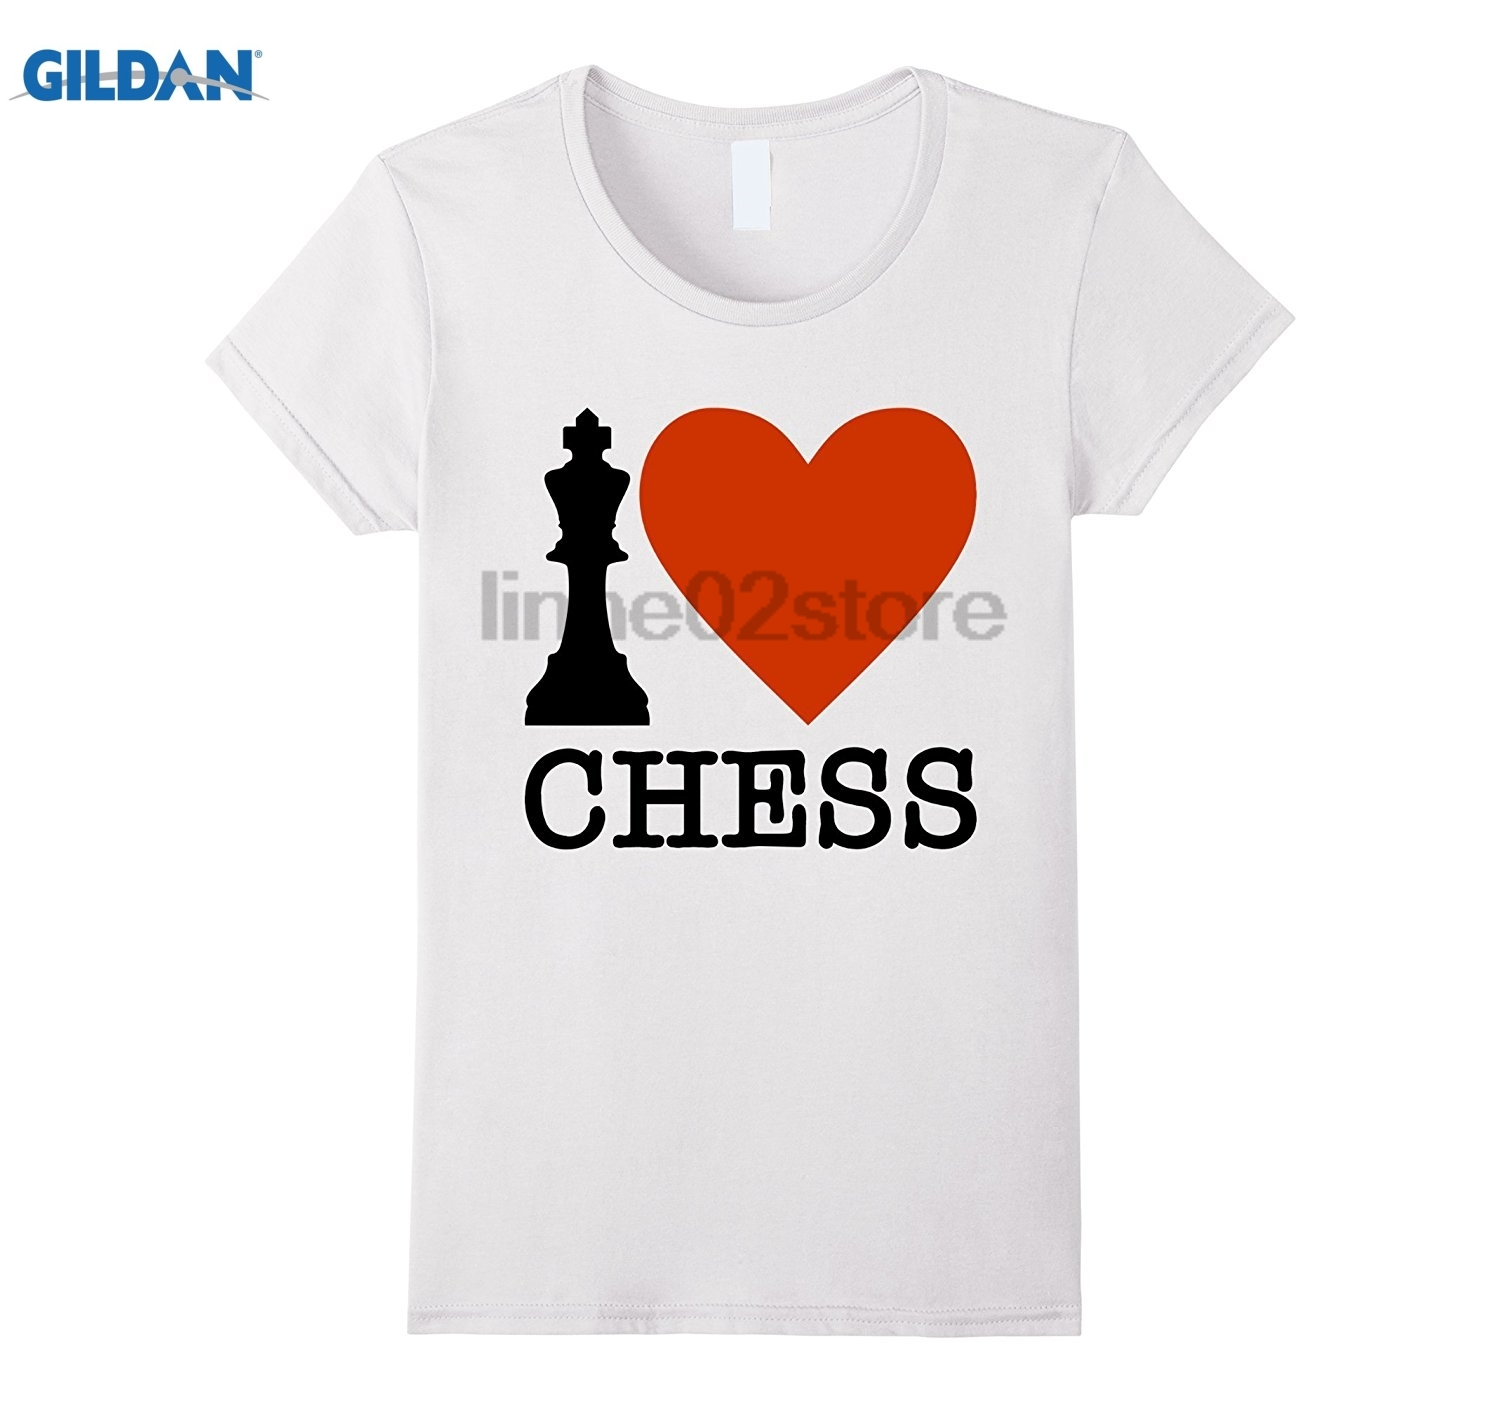 GILDAN I Love Chess T-Shirt Strategy Board Game Master Graphic Tee Mothers Day Ms. T-shirt Dress female T-shirt